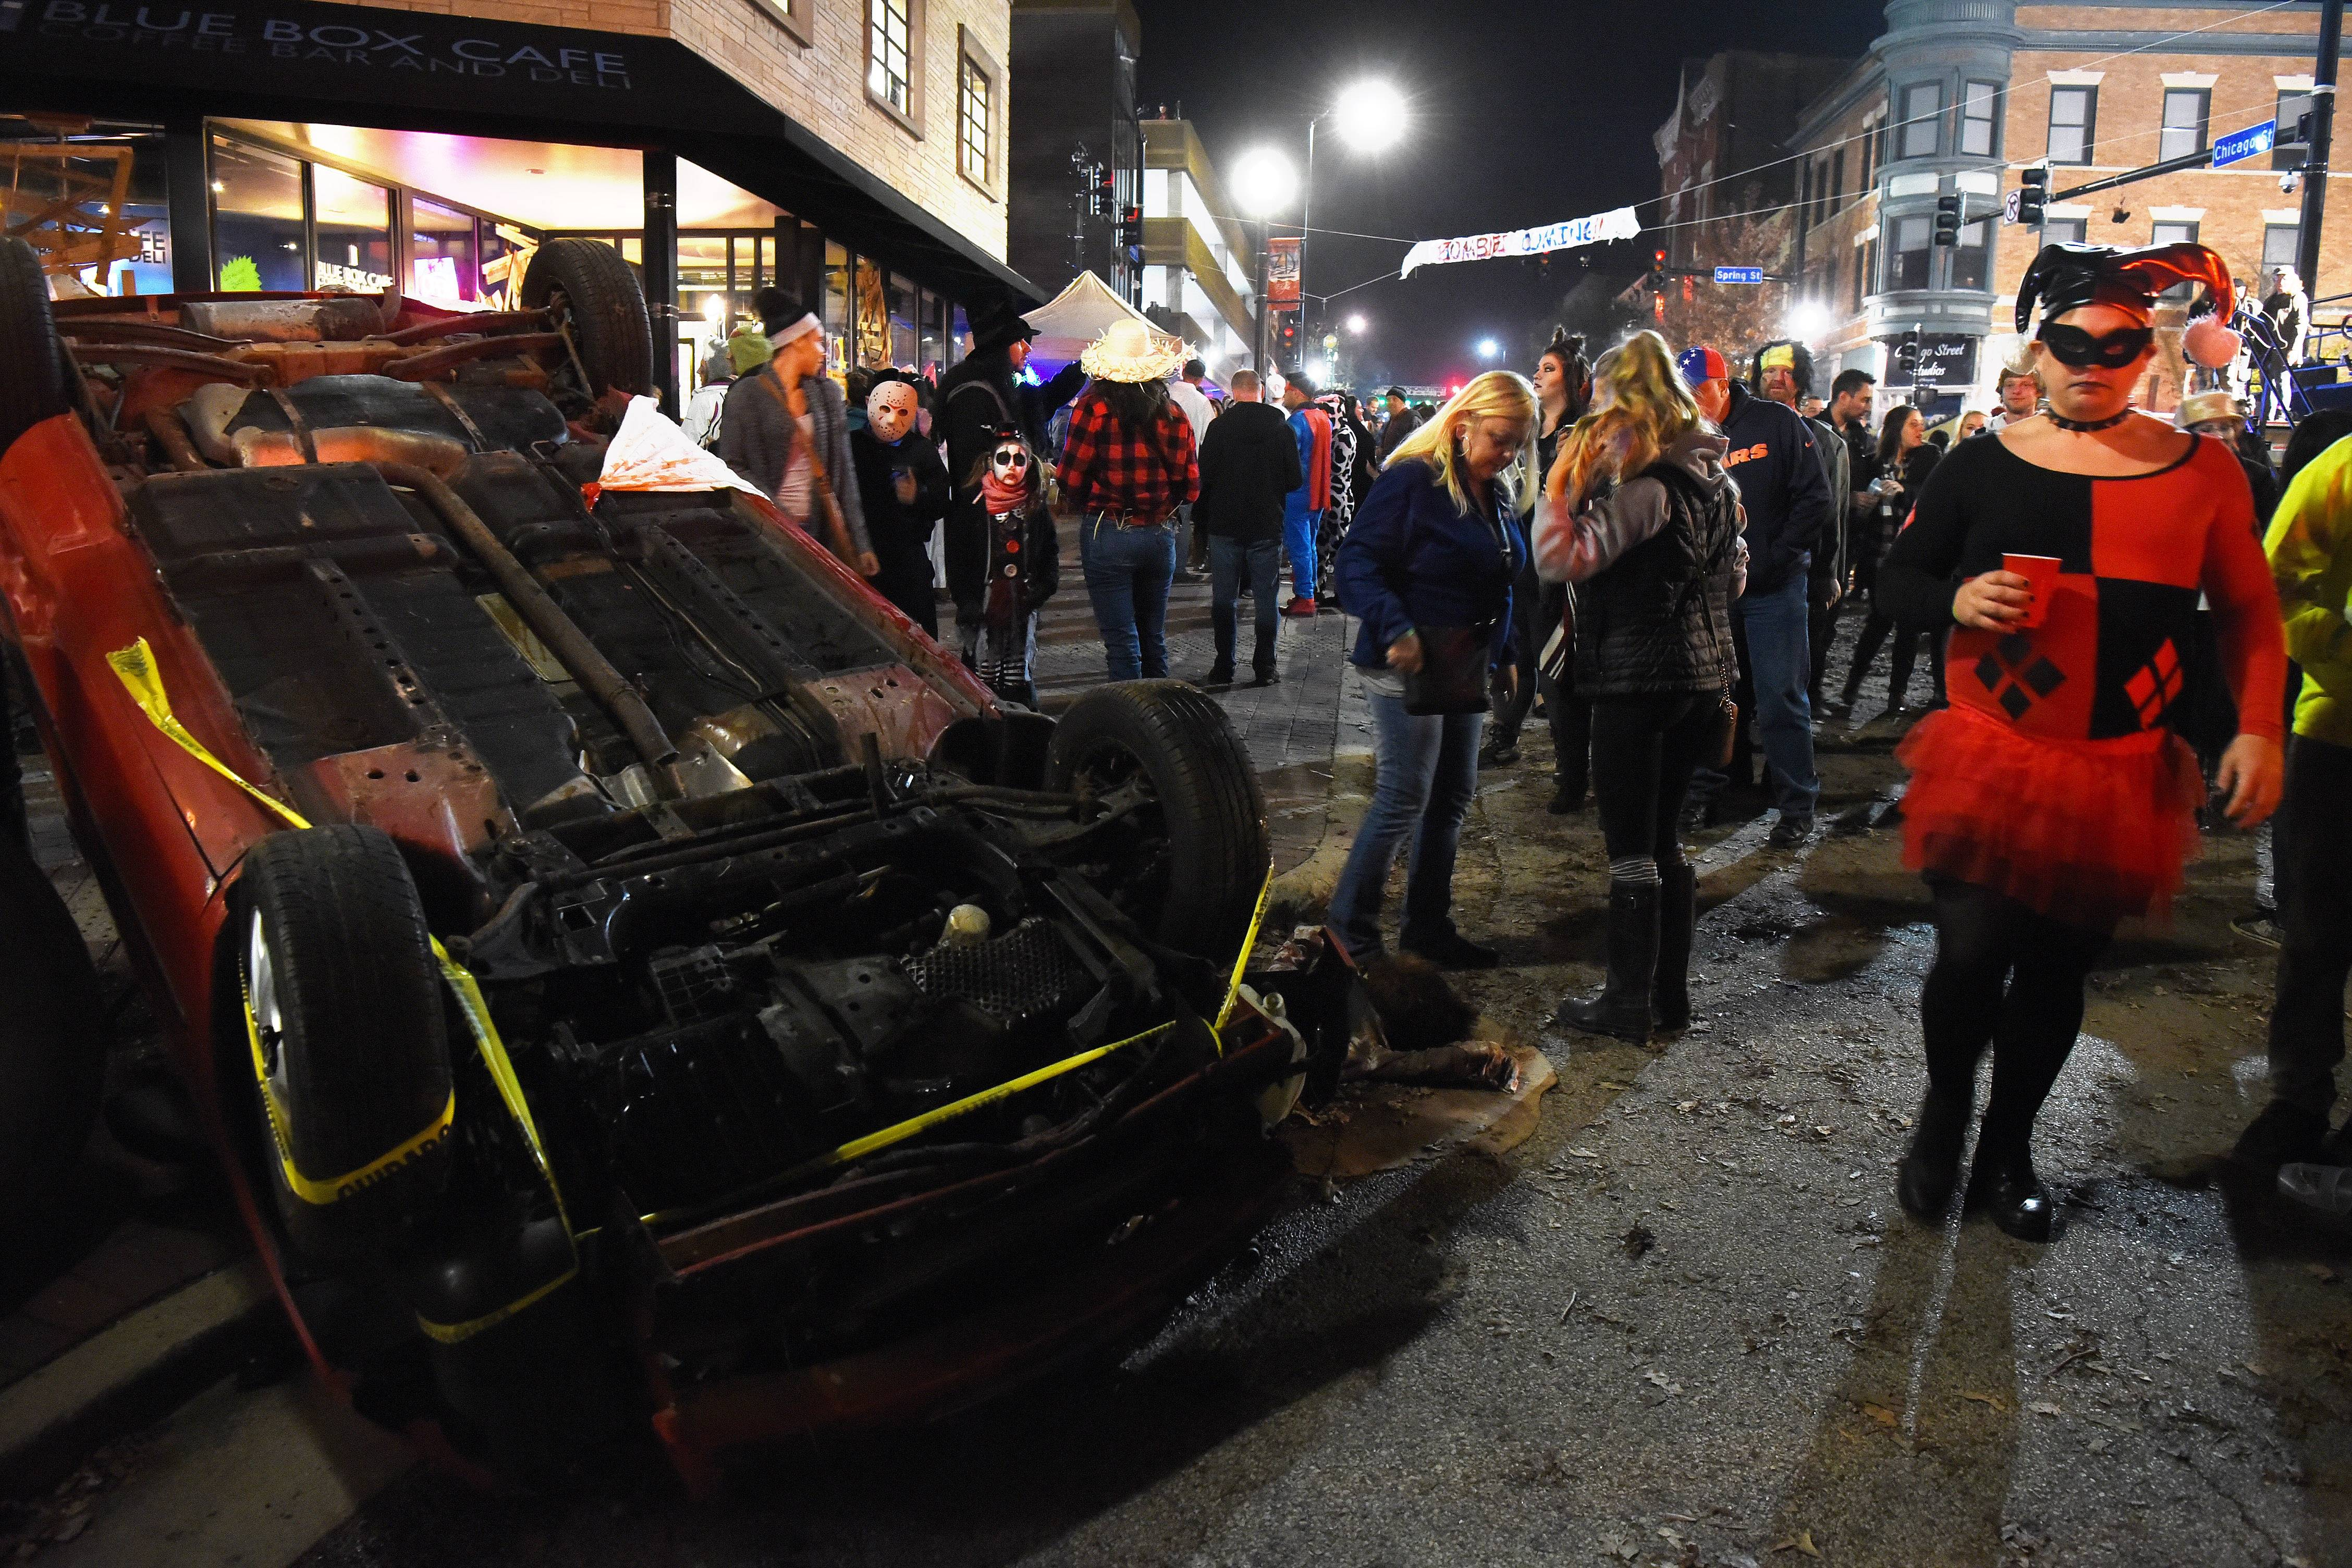 An overturned car sets an apocalyptic scene during last year's Nightmare on Chicago Street in Elgin.